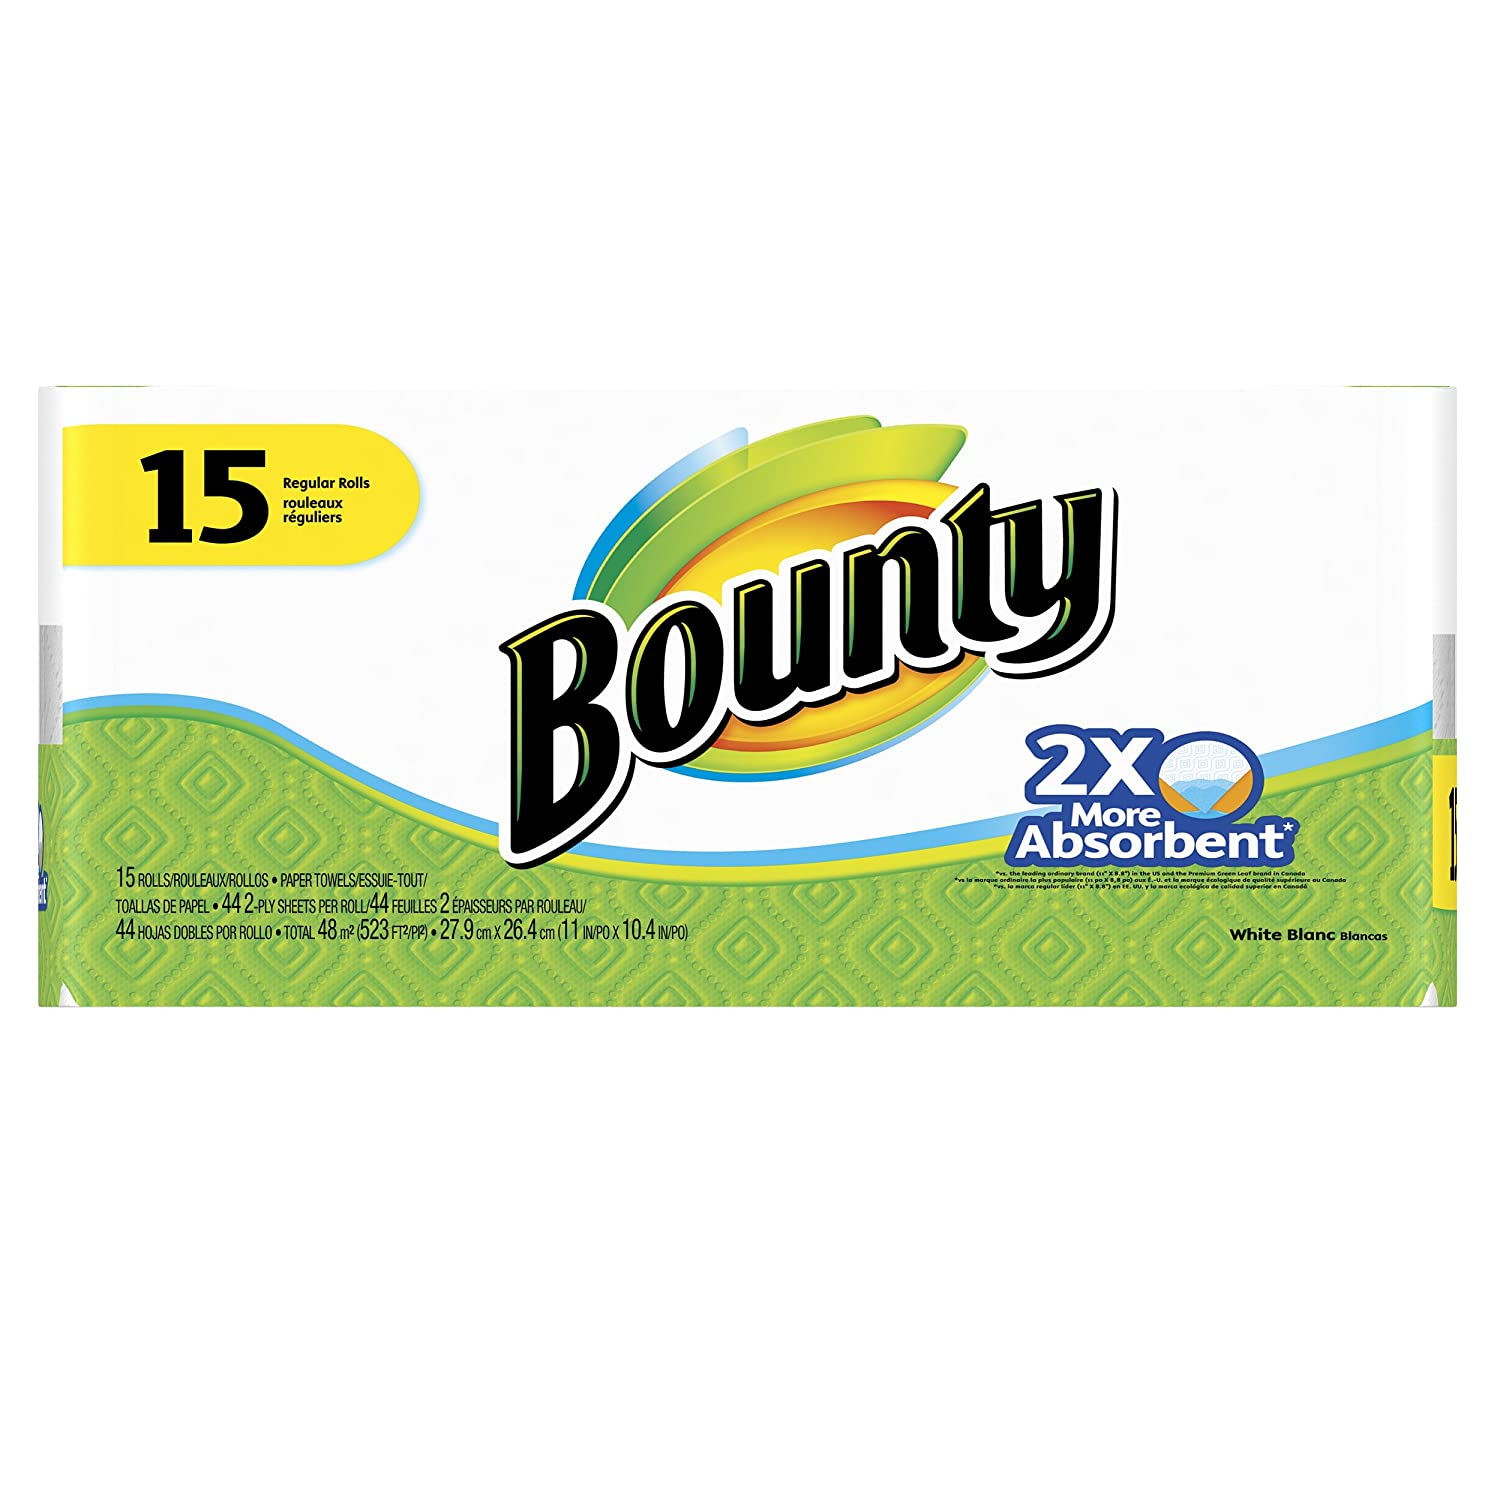 Amazon.com: Bounty Paper Towels, White, 15 Regular Rolls (Case of 1): Health & Personal Care